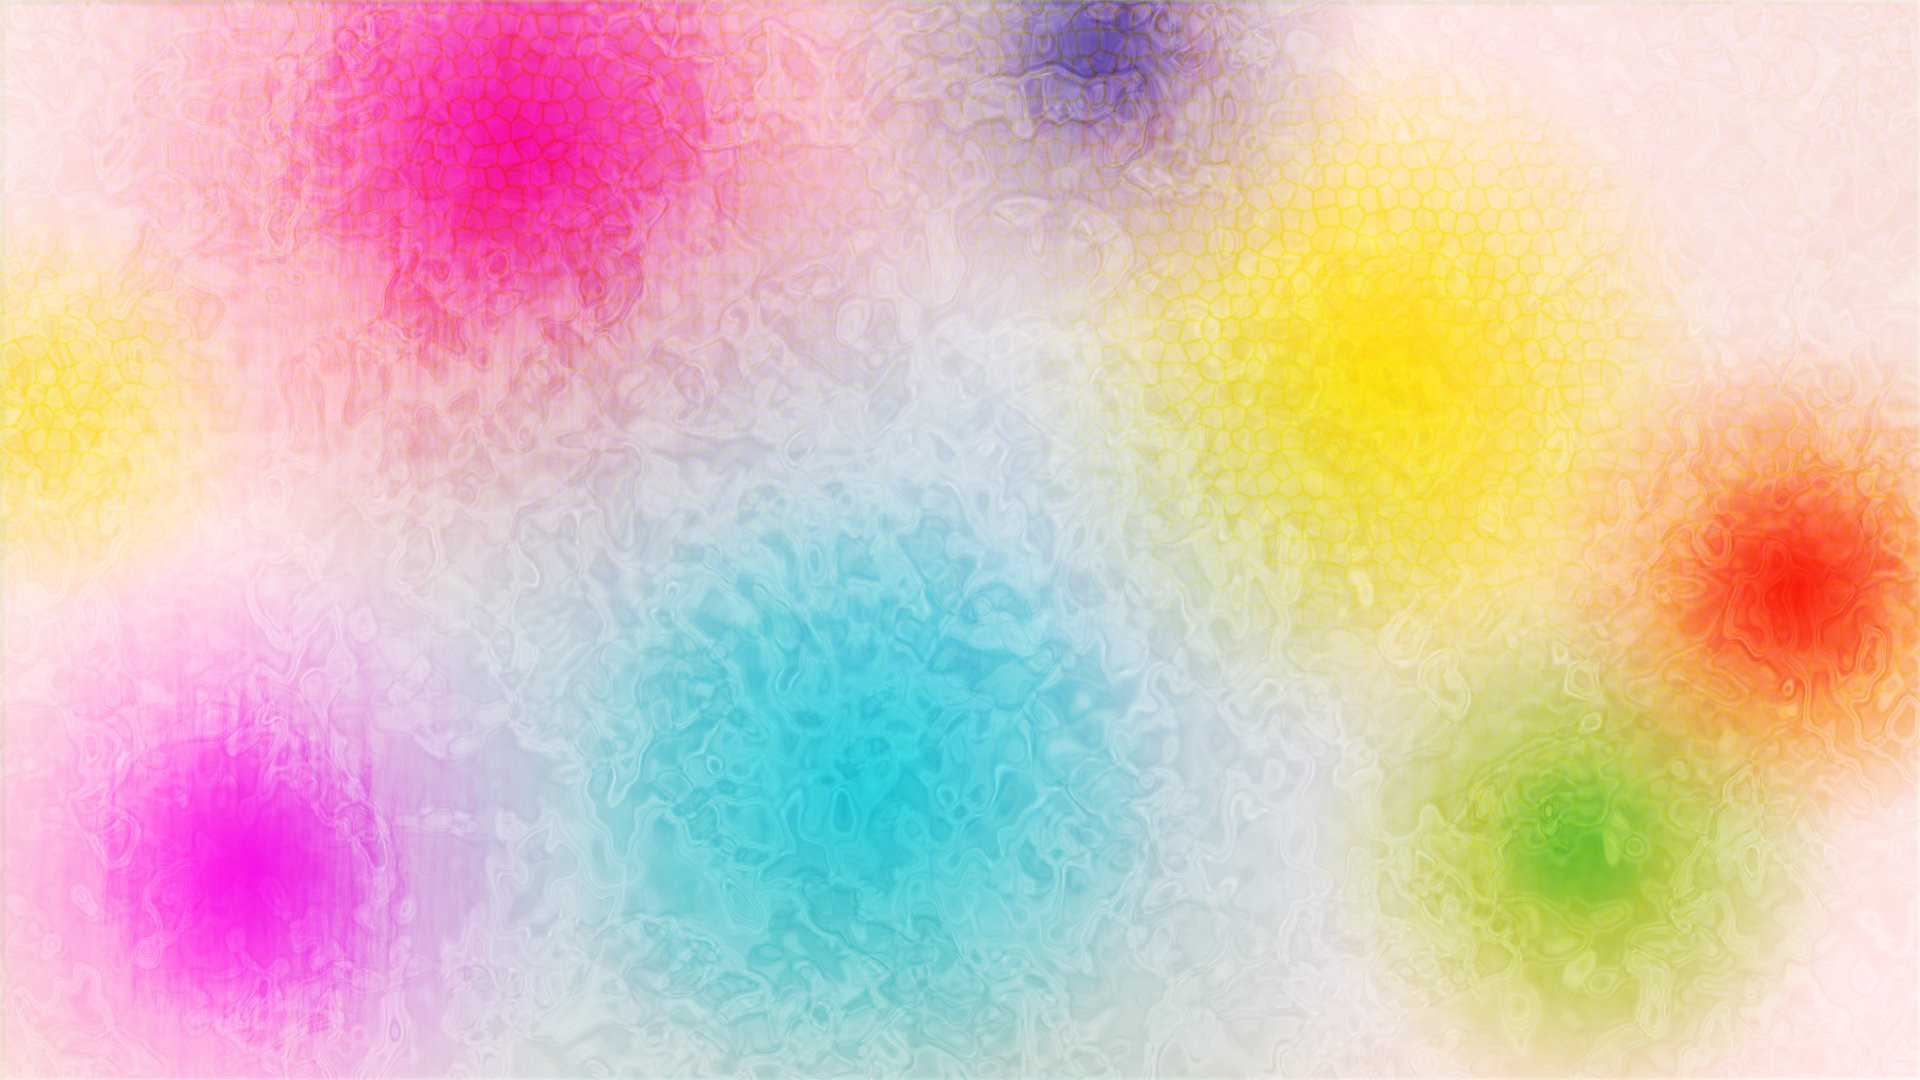 cool moving backgrounds for tumblr